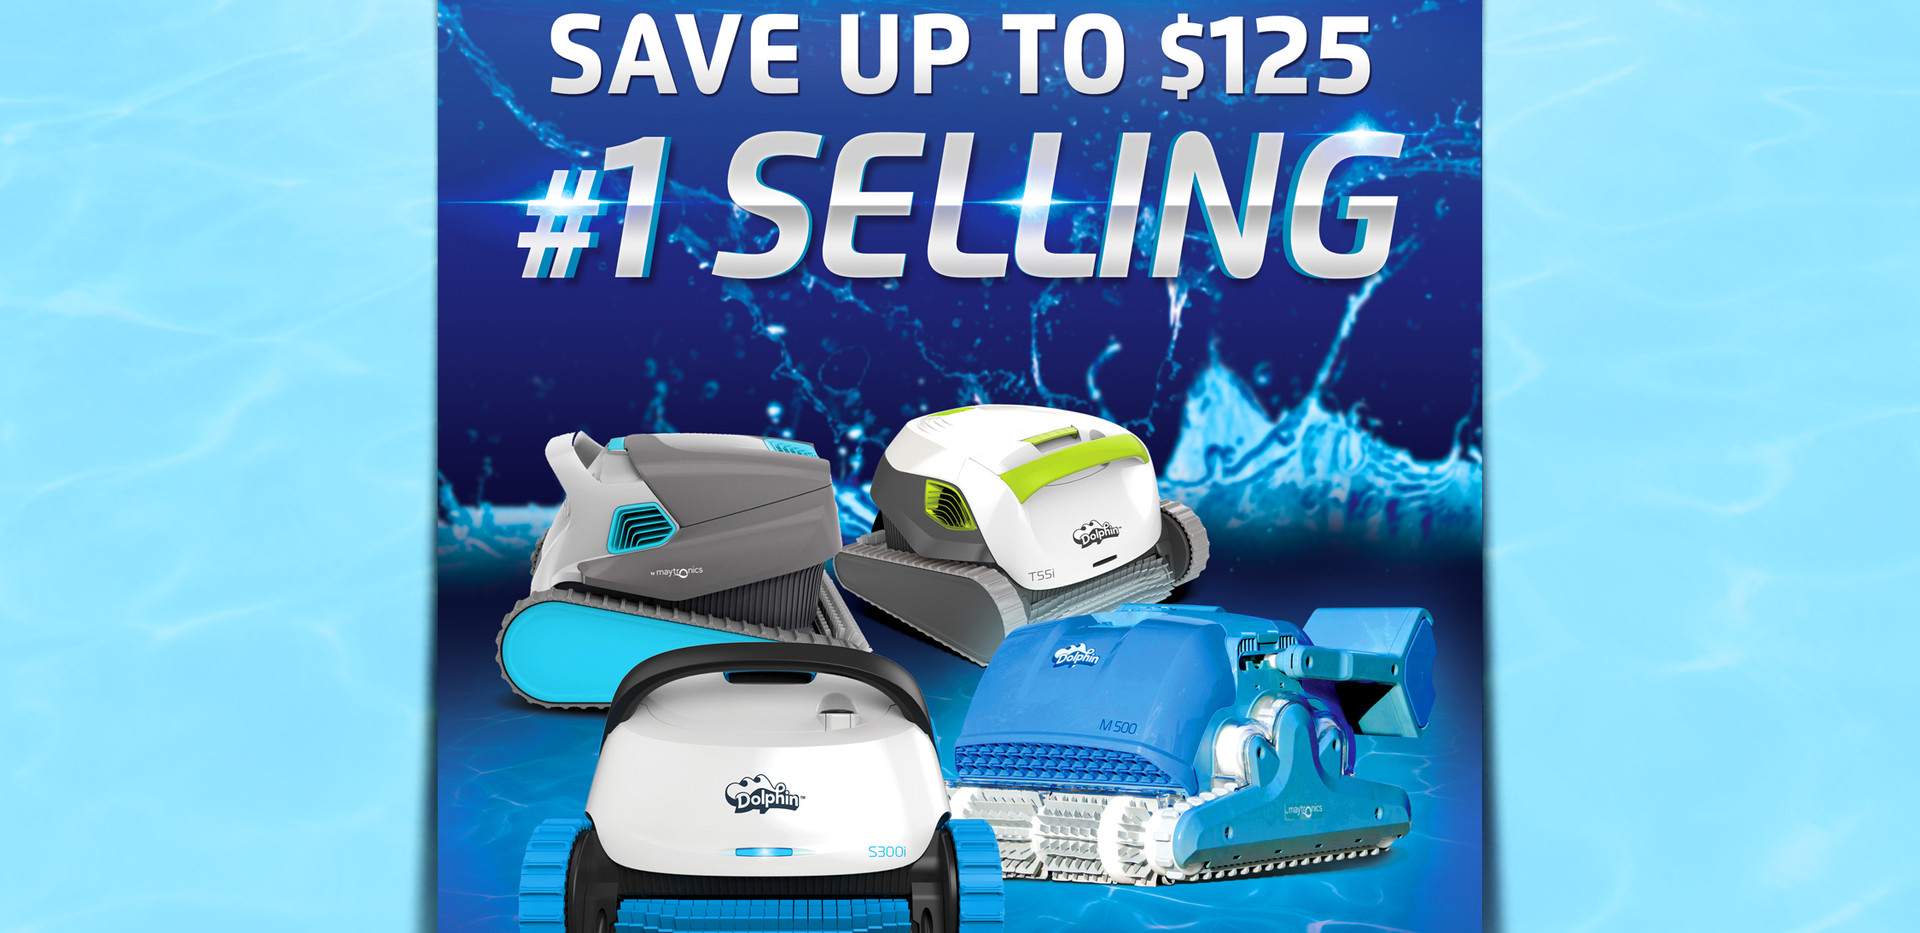 Dolphin Robotic Pool Cleaner Poster